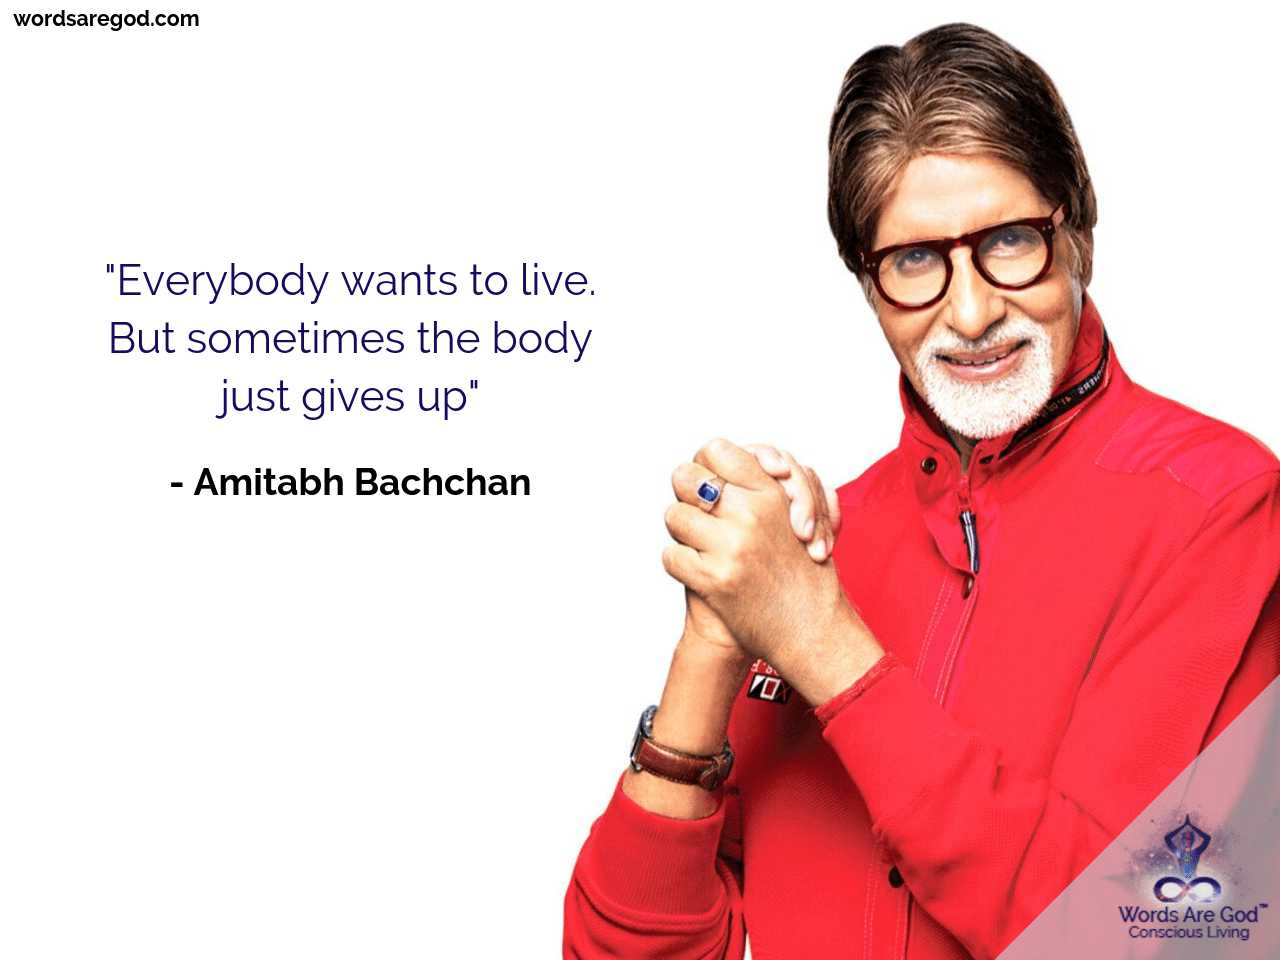 Amitabh Bachchan Inspirational Quote